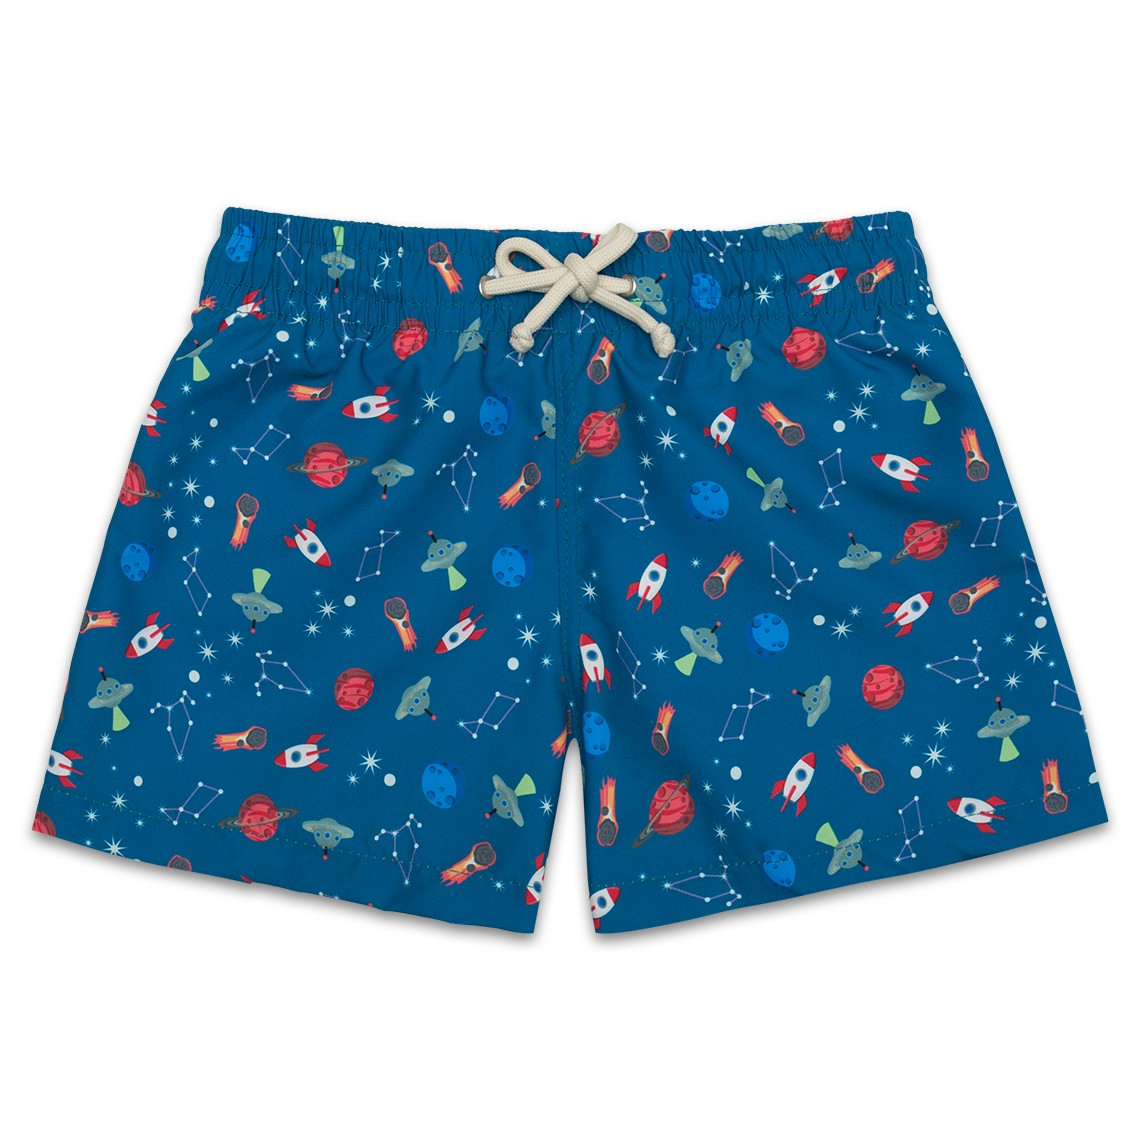 6a57c1b8fd Boy Swim short Blue Space Ships 2 to 8 years - Ocoly